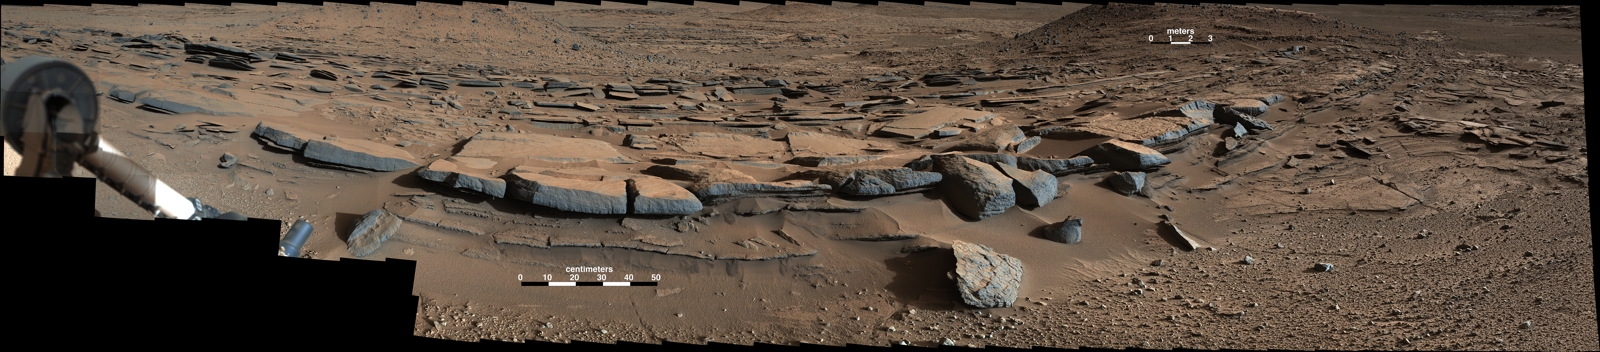 Bedding Pattern Interpreted as Martian Delta Deposition